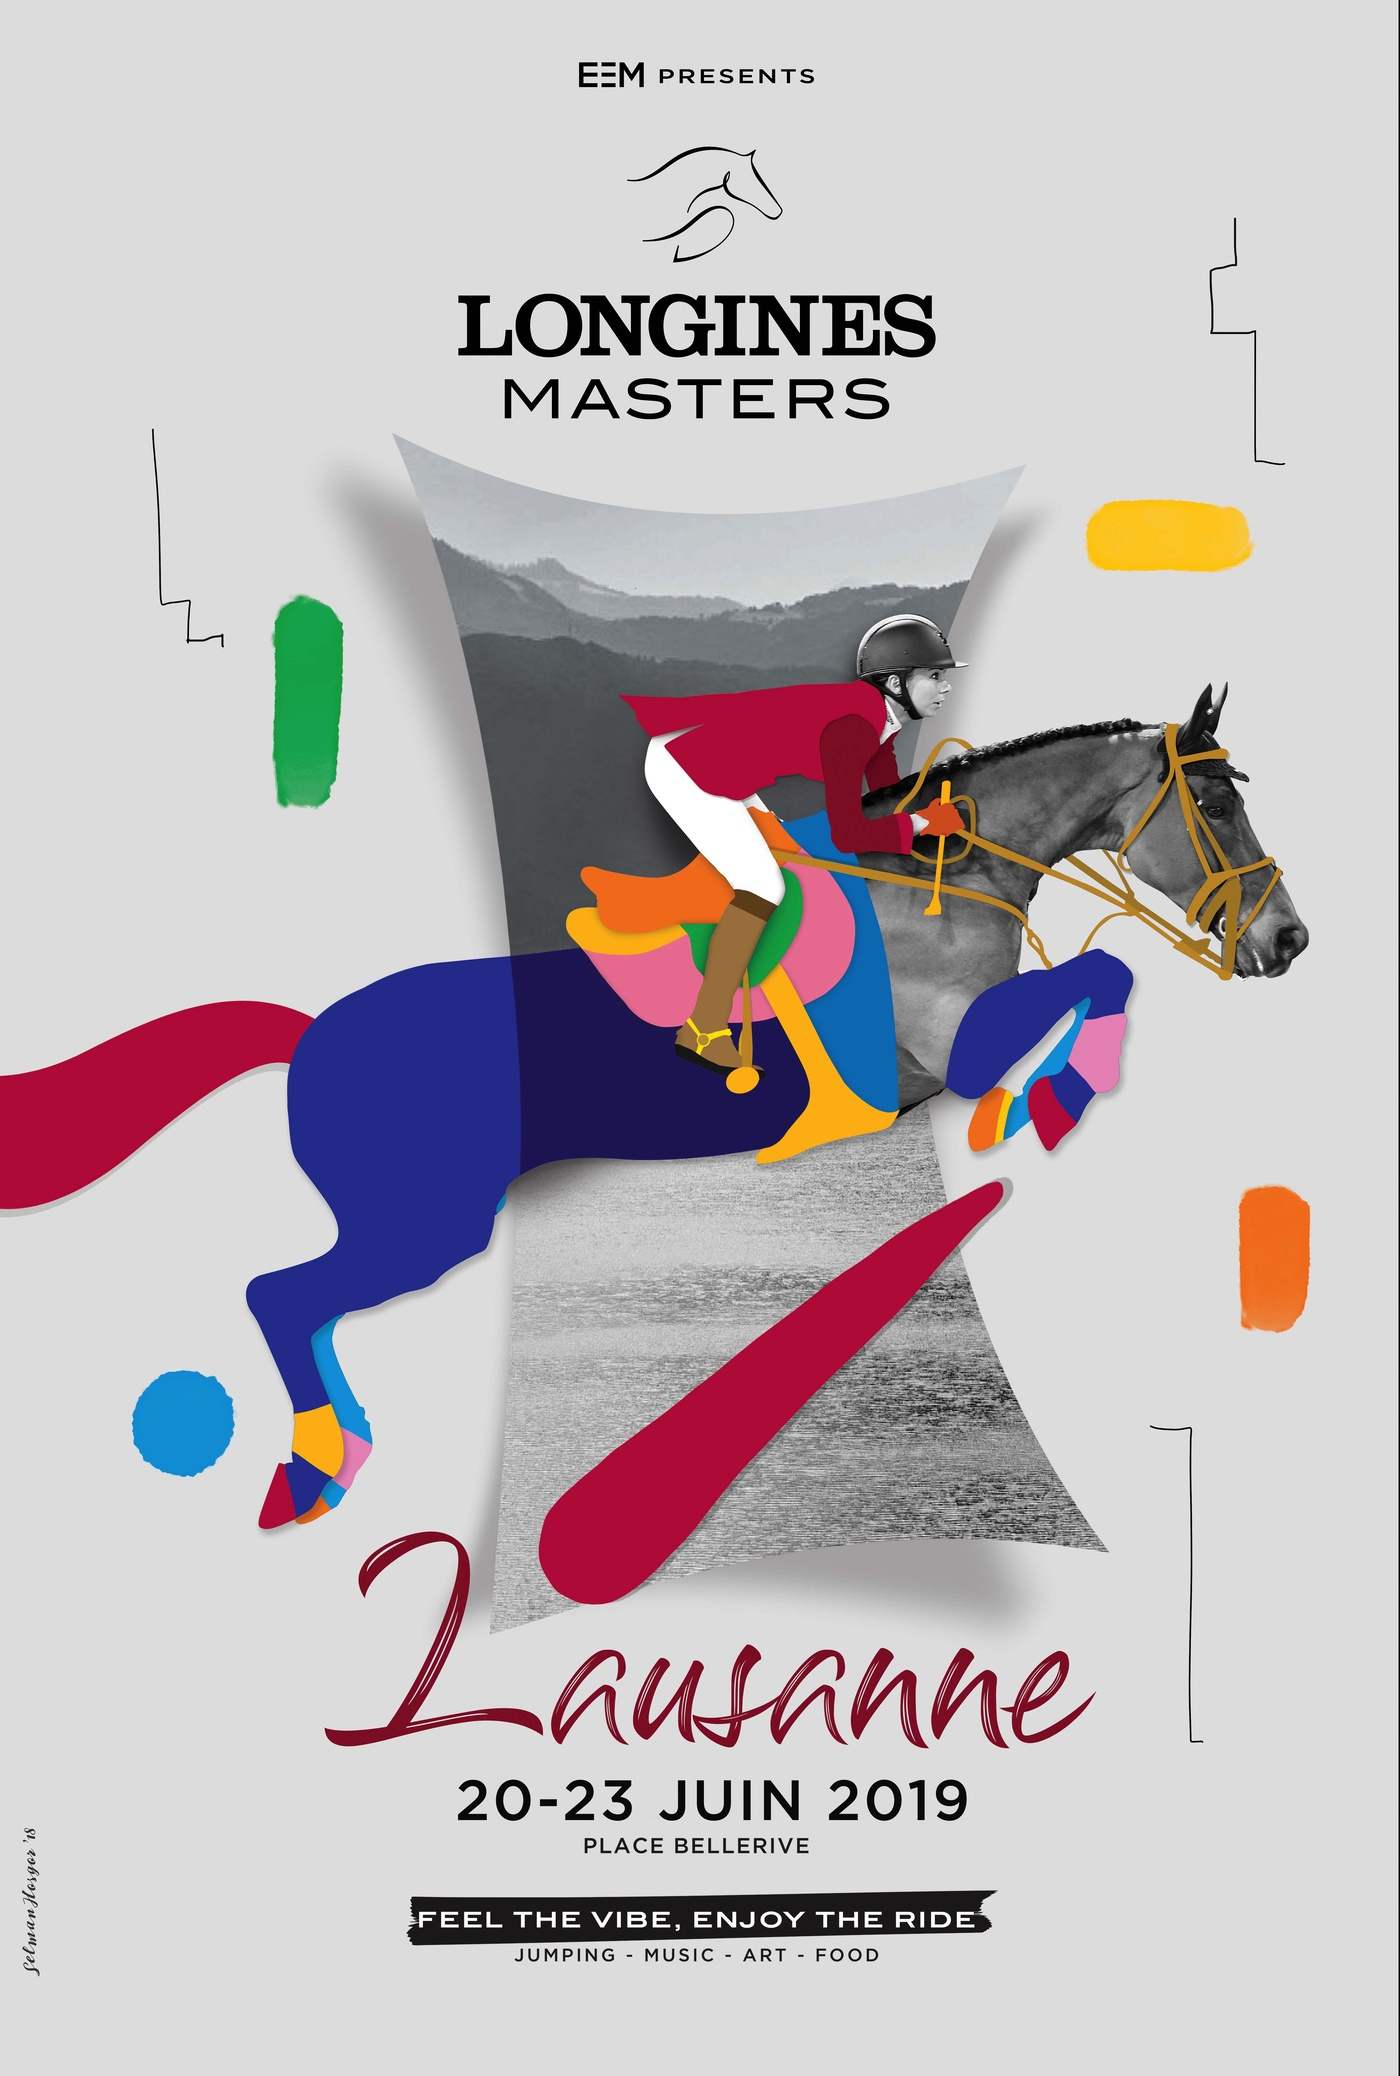 Longines Show Jumping Event: Lausanne, new leg of the Longines Masters Series 1